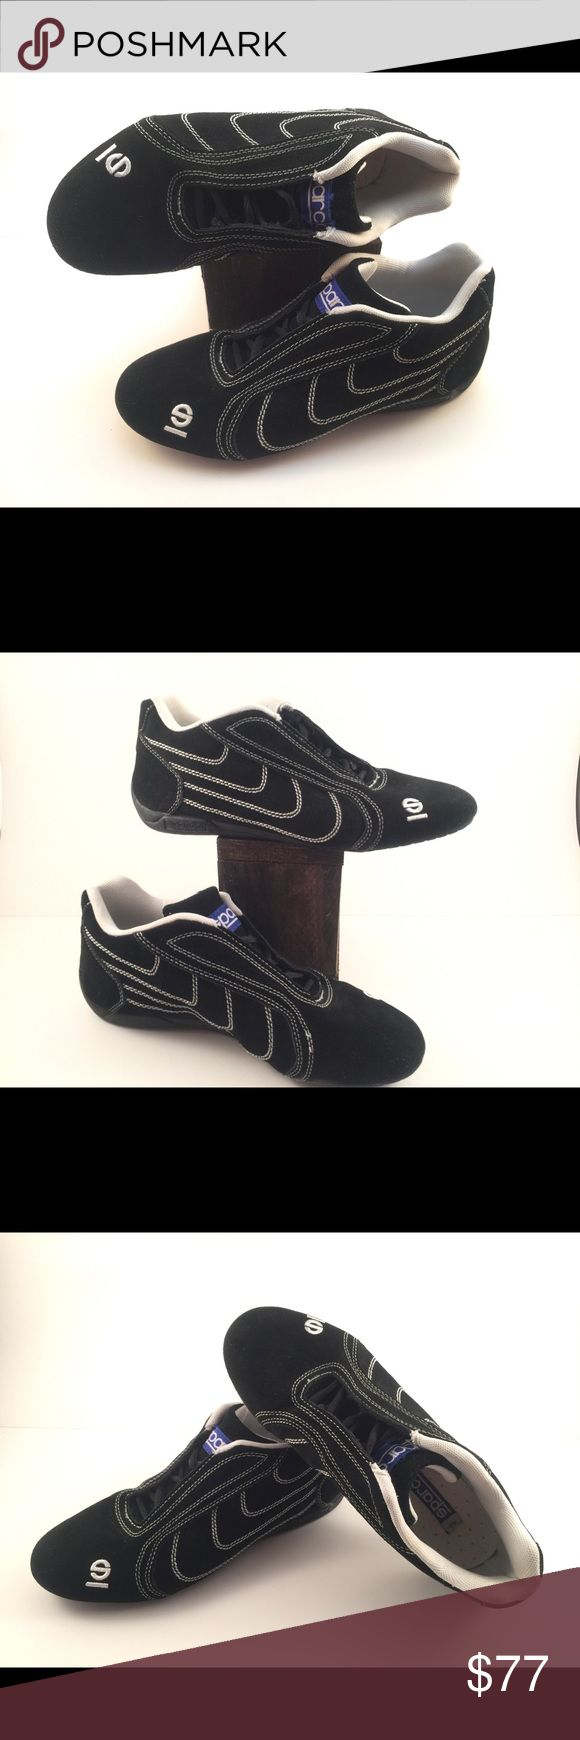 Sparco Men's Racing Shoes size 7 US (40Eur) New/ never worn Sparco Racing Shoes. Incredibly popular so get these before they are gone! Sparco Shoes Athletic Shoes